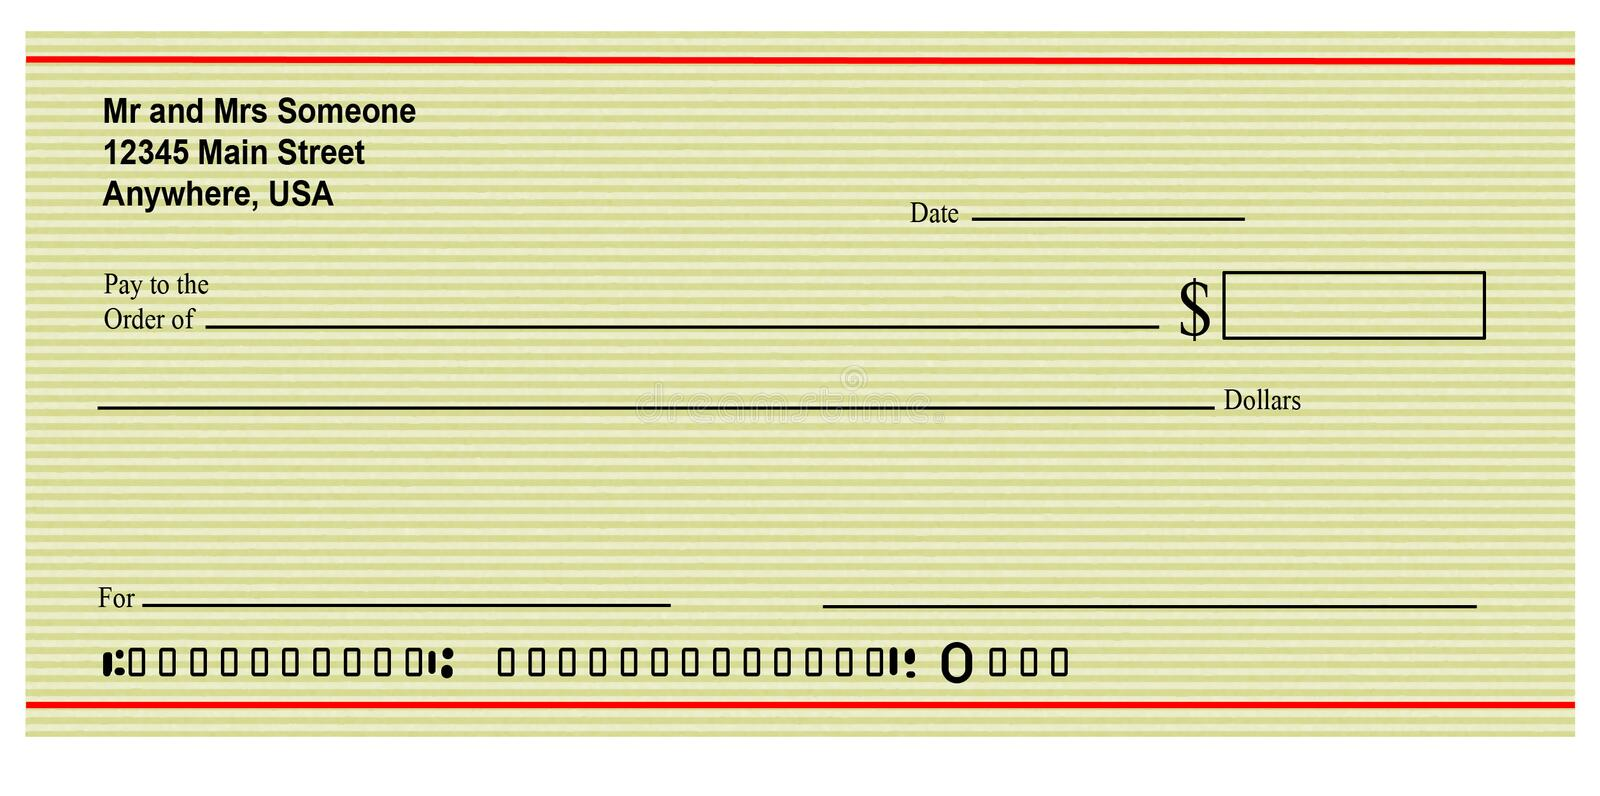 Blank Check stock illustration Illustration of blank - 4237029